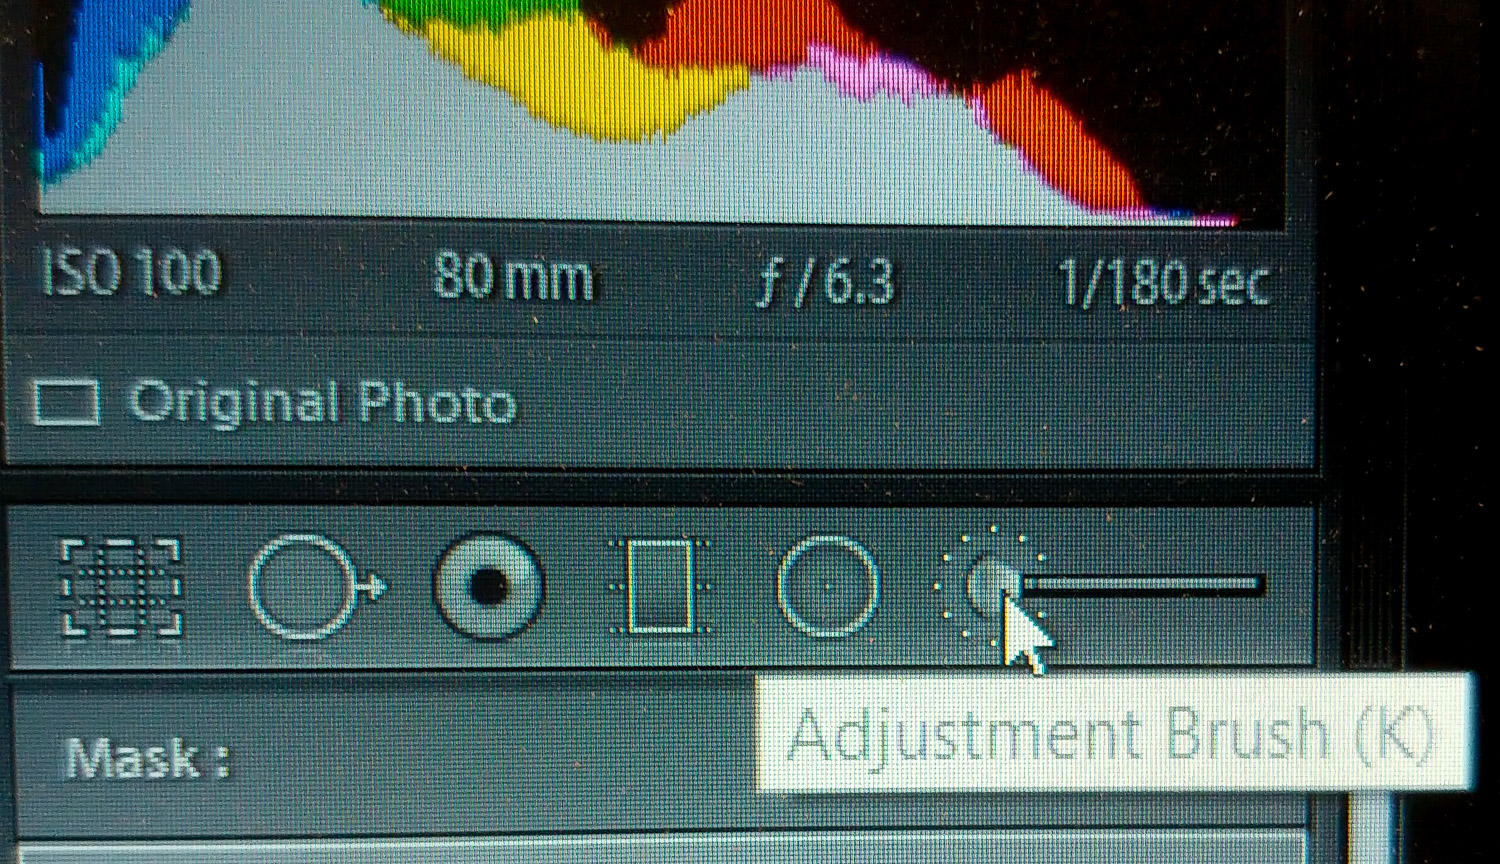 Local adjustment tools in Lightroom